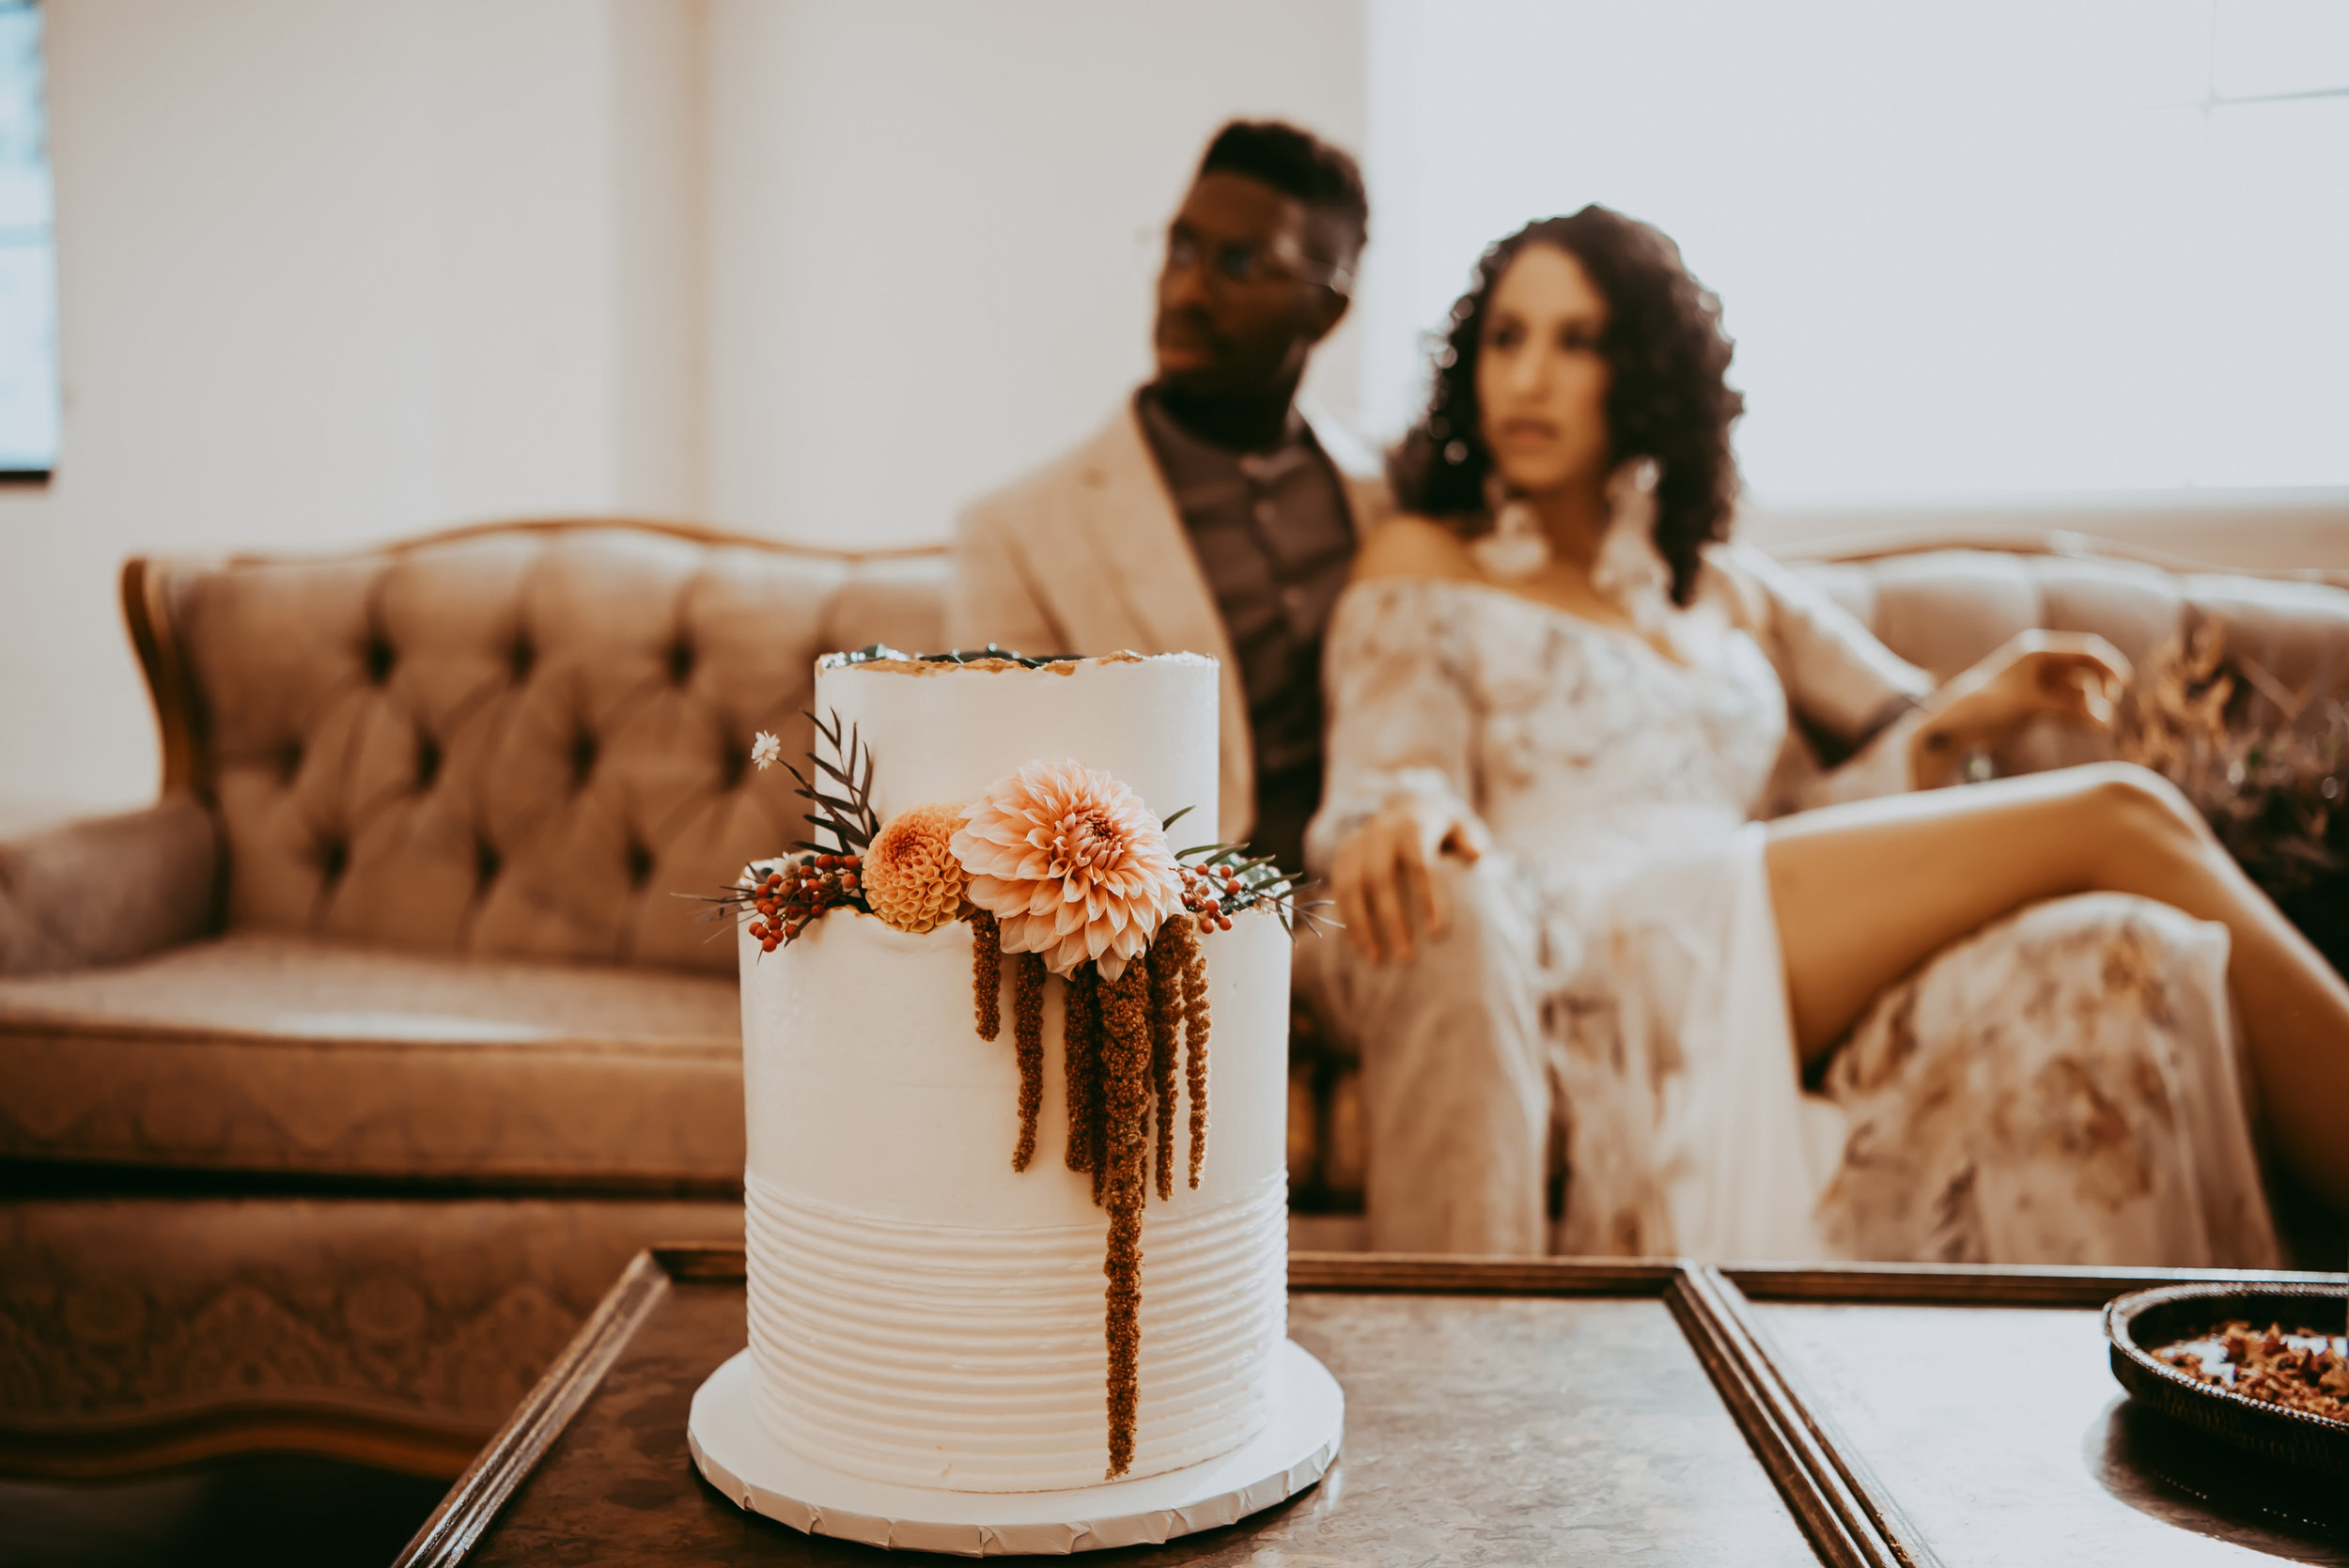 Venue: Block 41 Seattle  Coordination: Rock & Stone Weddings with Rock & Stone Collective  Photography: JamieY Photography